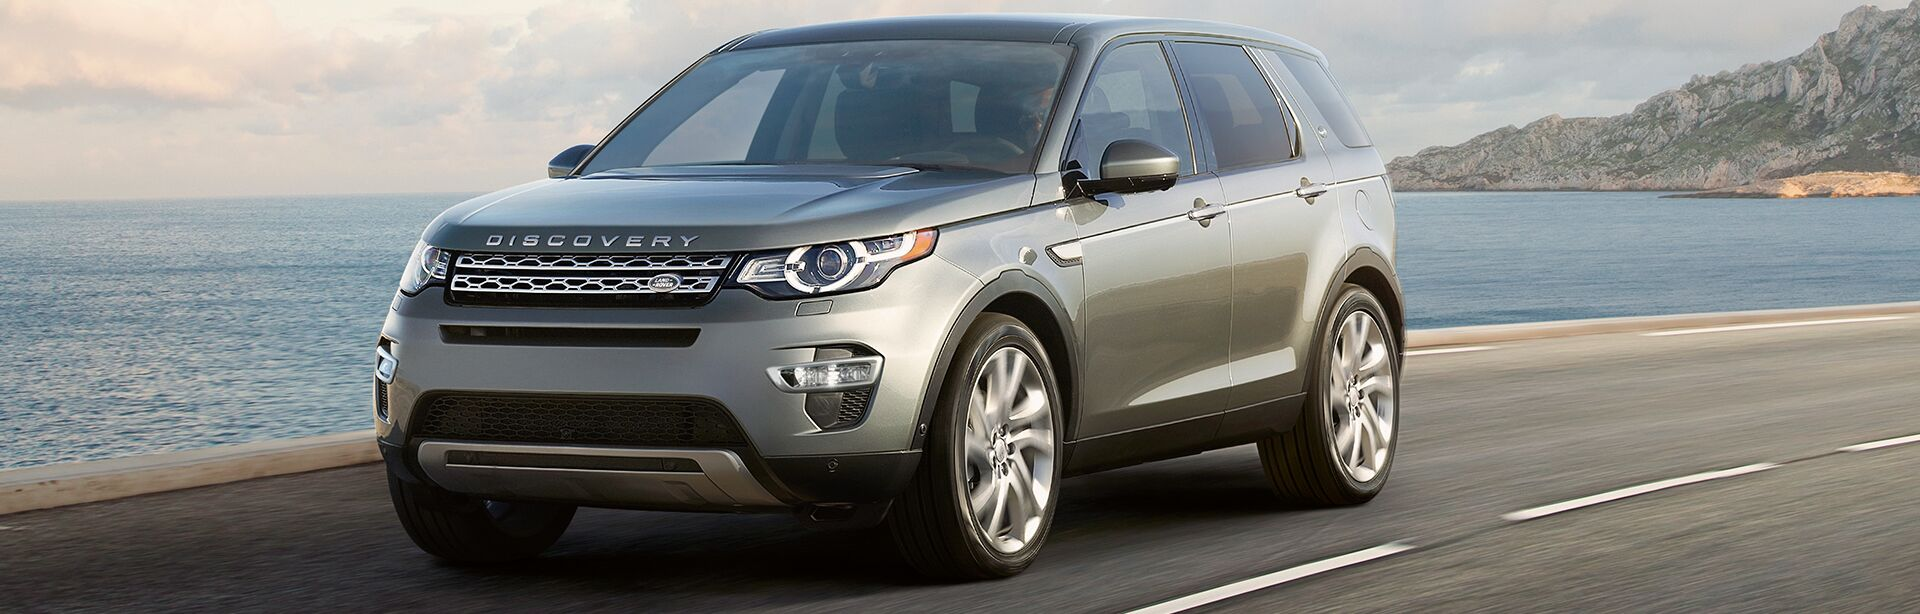 financing en current index landrover se lease discovery rover specials offers and canada ext land